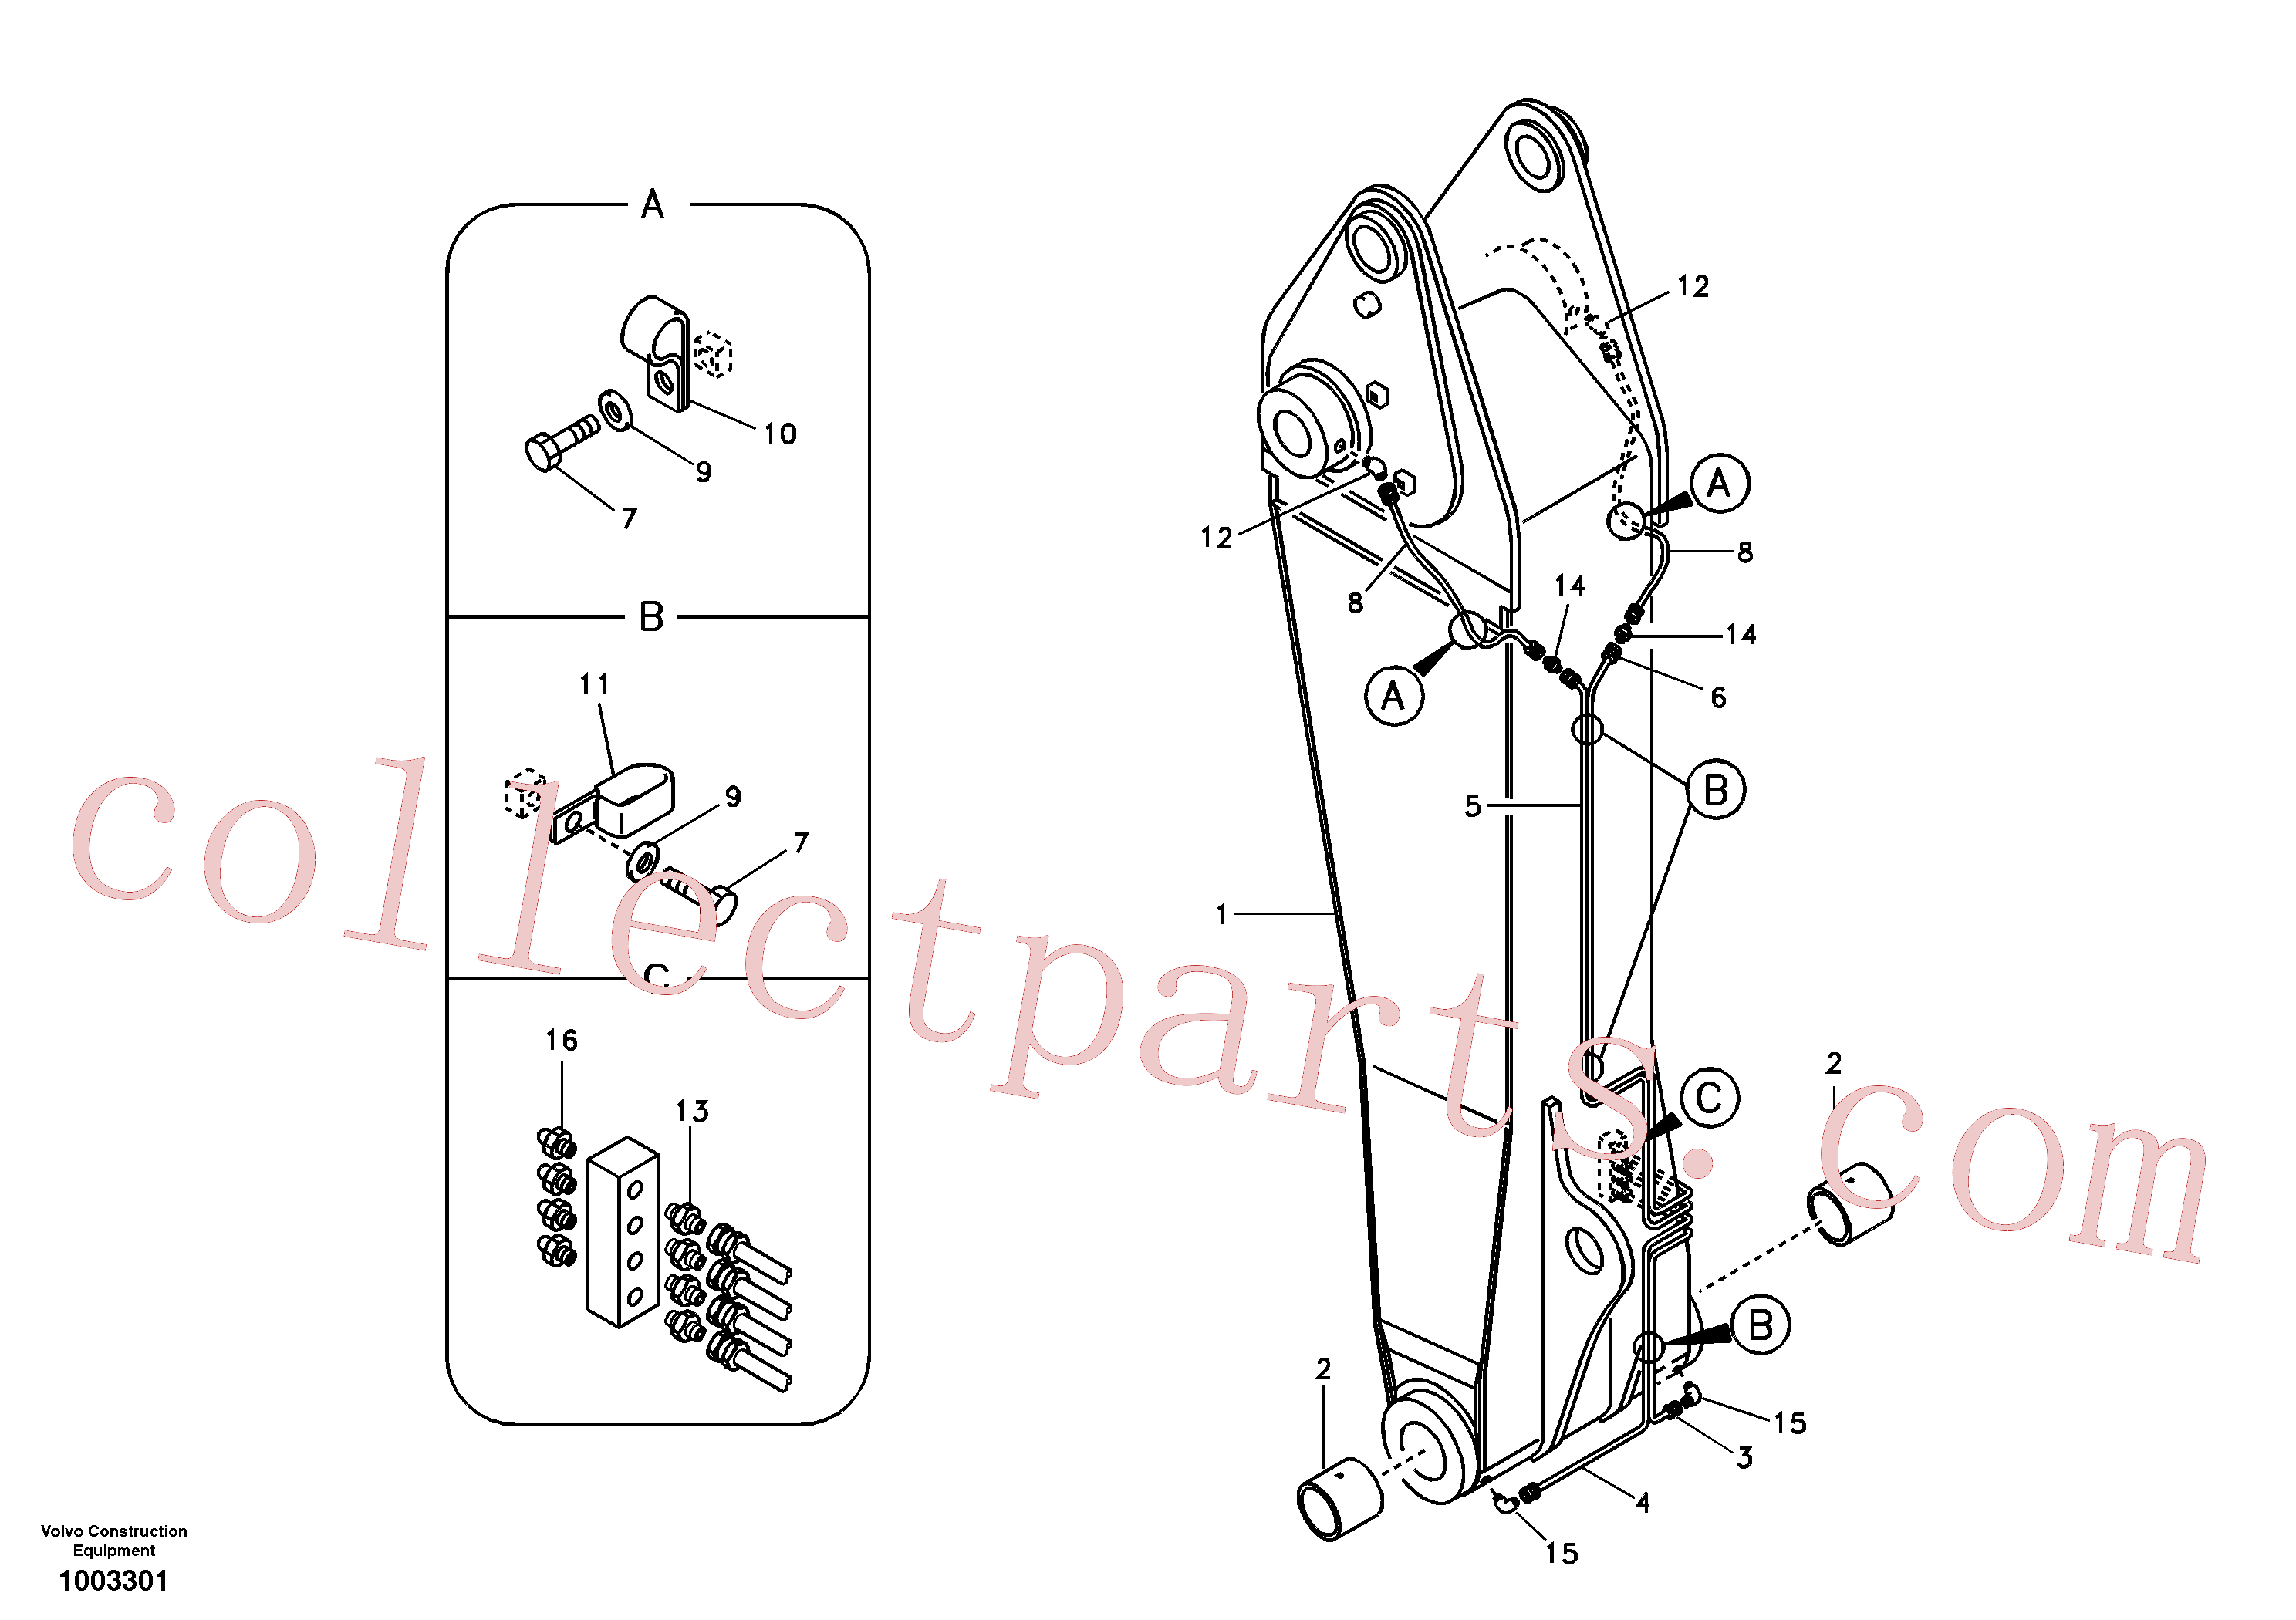 VOE14563027 for Volvo Boom and grease piping, adjustable 1st(1003301 assembly)